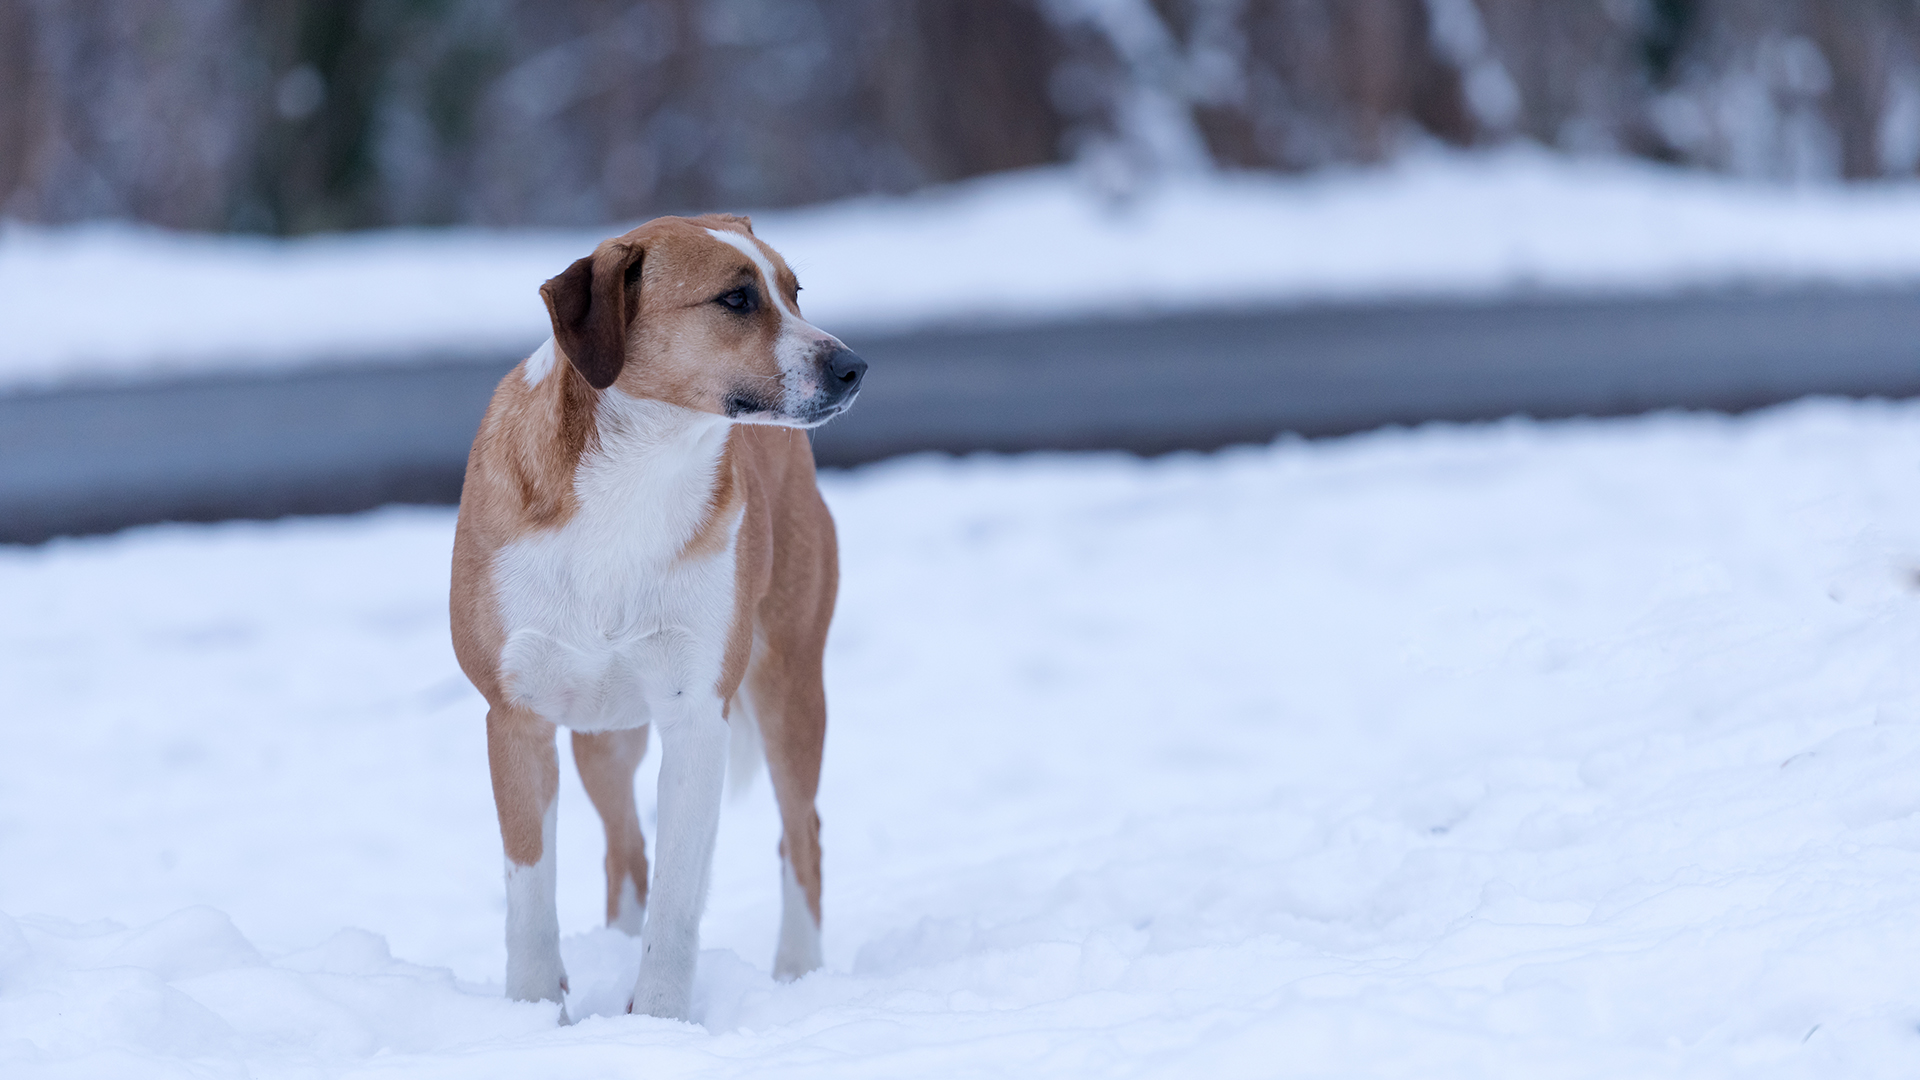 How to help dogs, cats left out in freezing cold weather